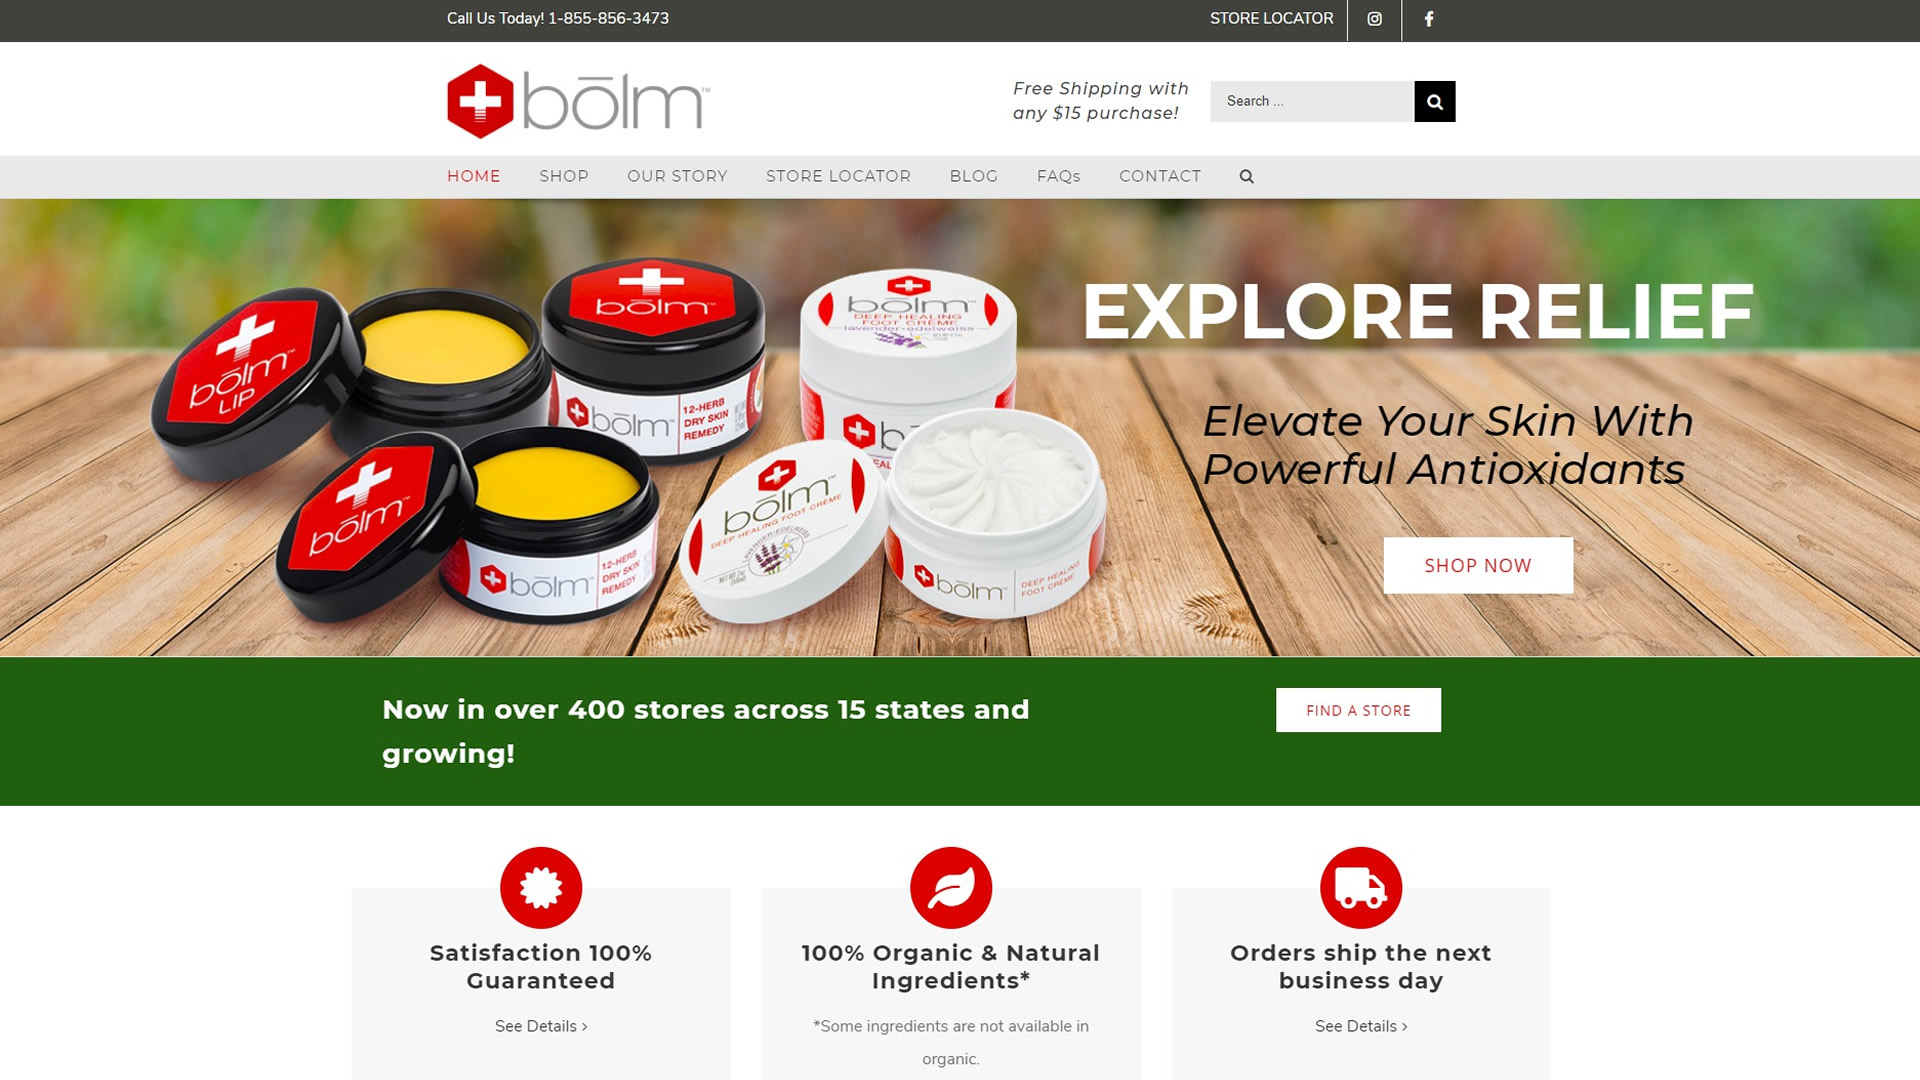 Bolm Skin Care Website